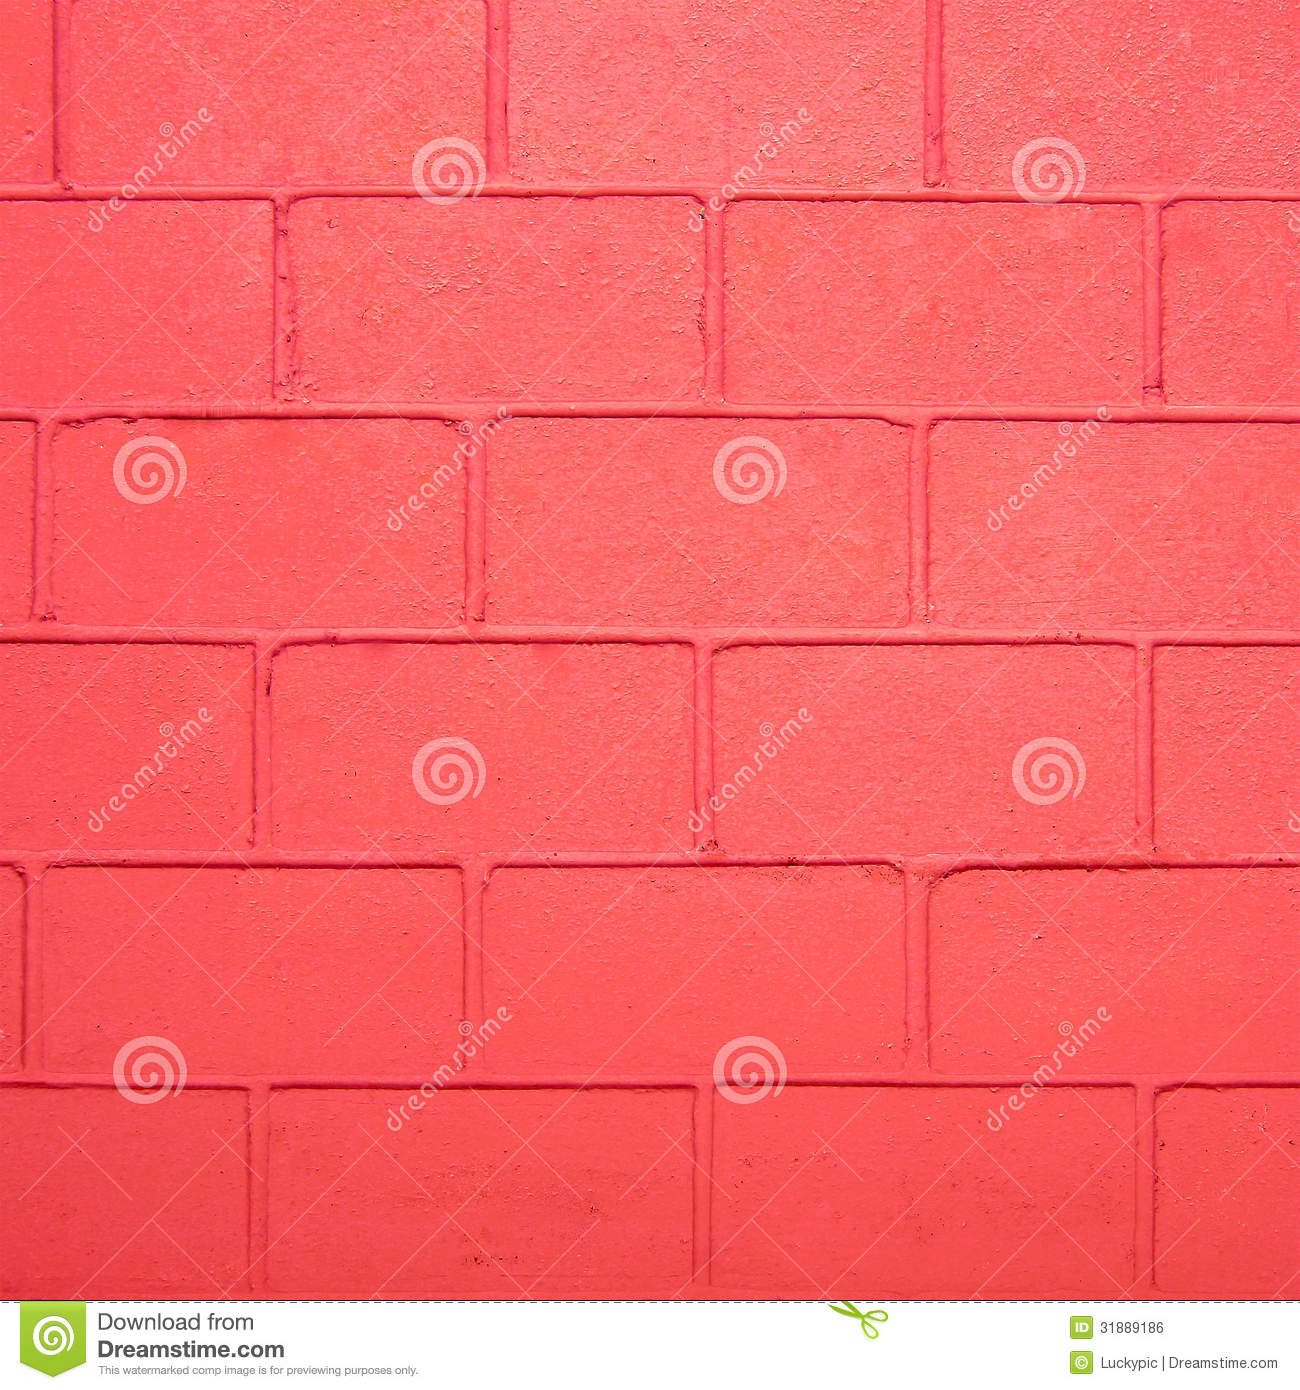 Red Colour Wall: Red Color Brick Wall Stock Photo. Image Of Retro, Textured